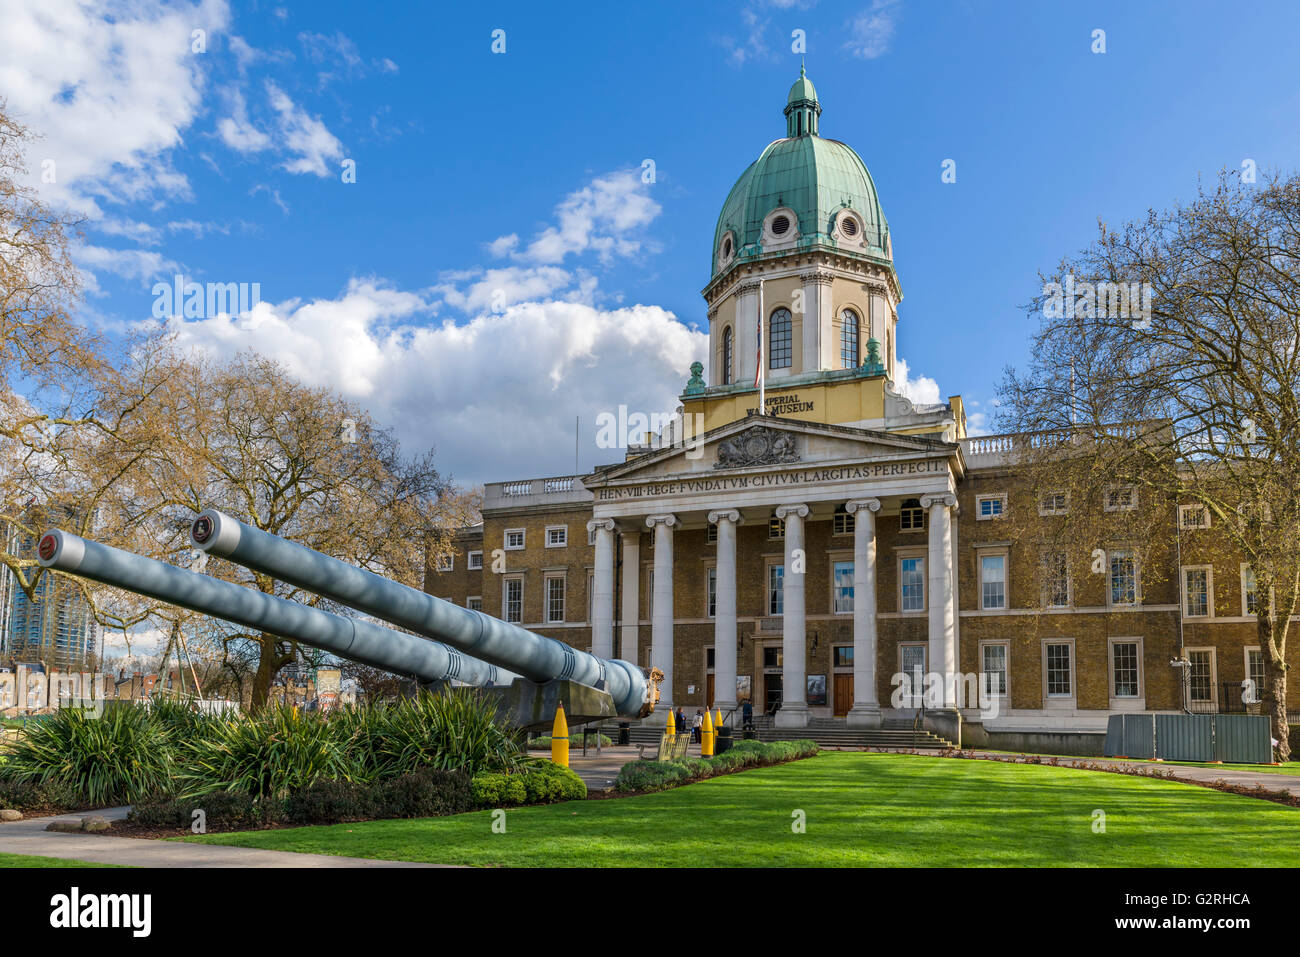 North entrance to the Imperial War Museum, with 15 inch naval guns in the foreground, Lambeth, London, England, - Stock Image